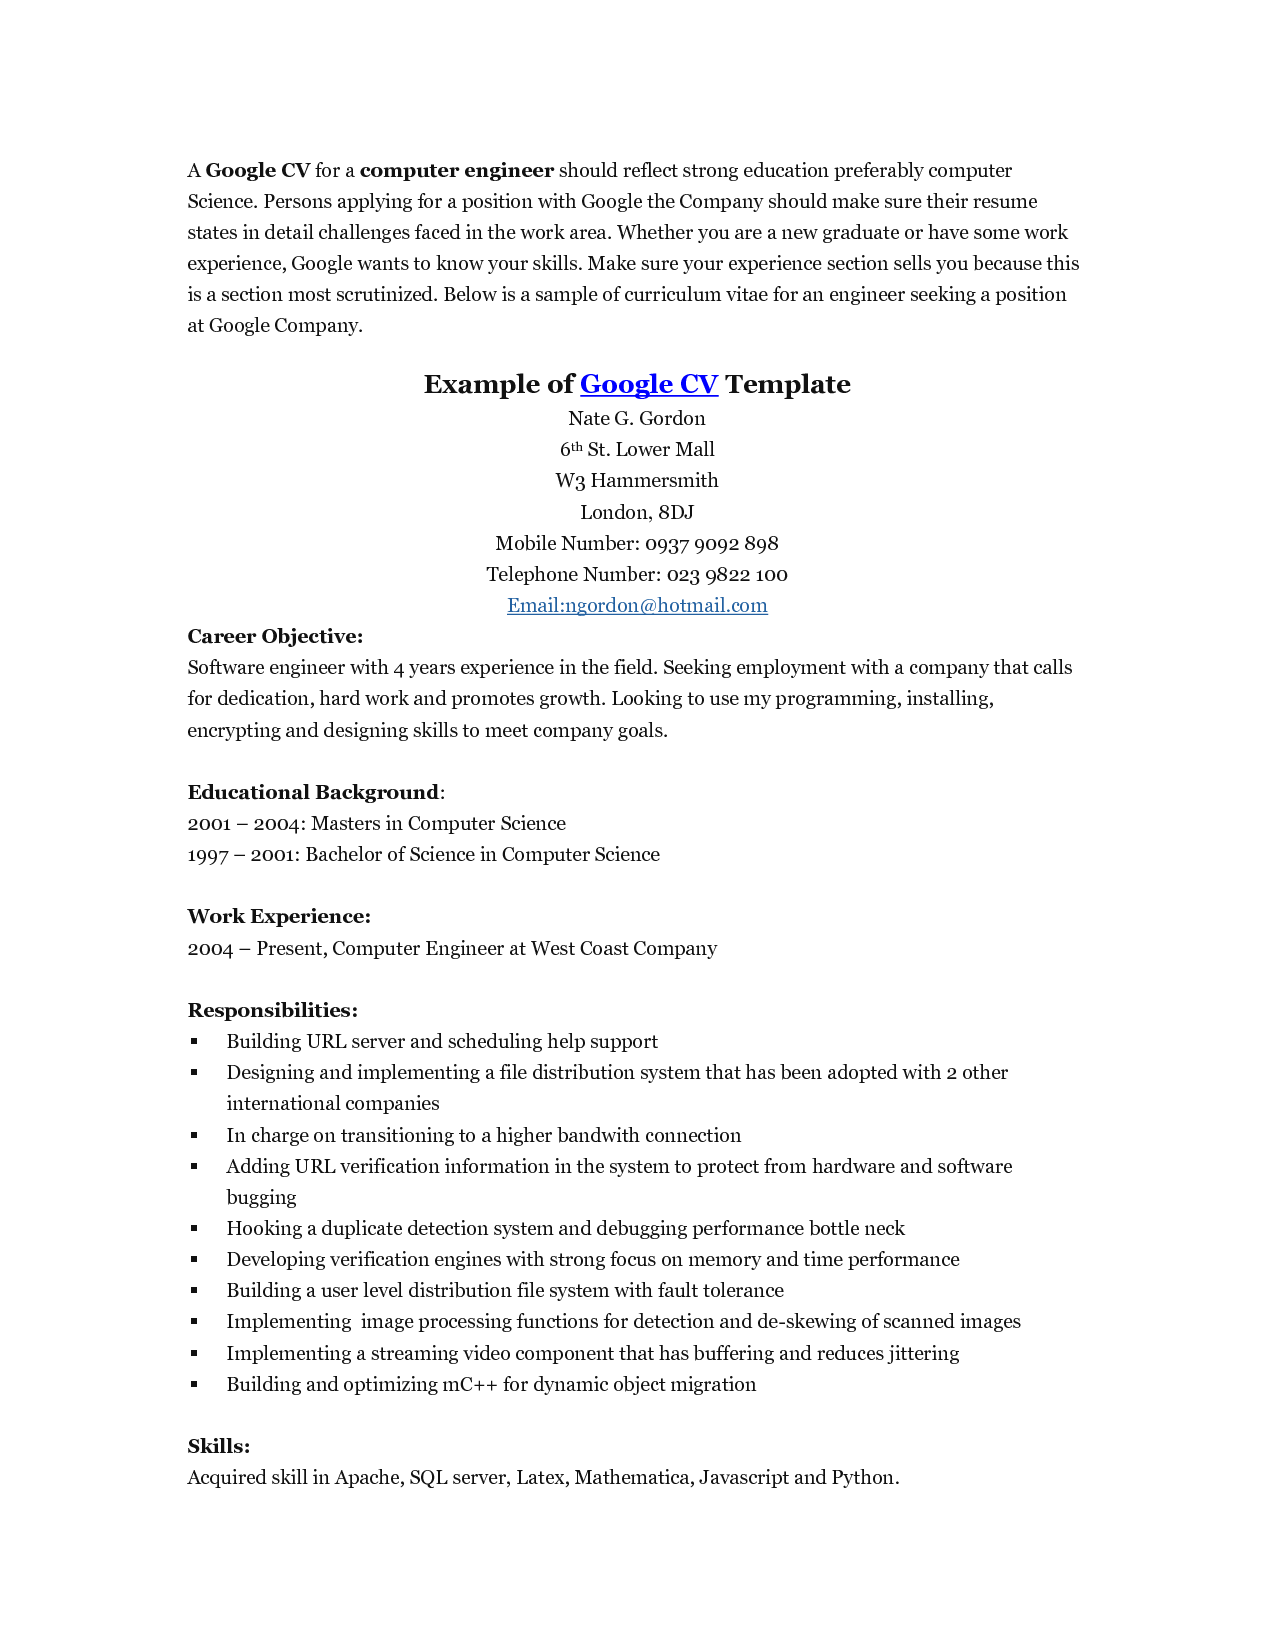 Google Templates Resume   HttpWwwJobresumeWebsiteGoogle